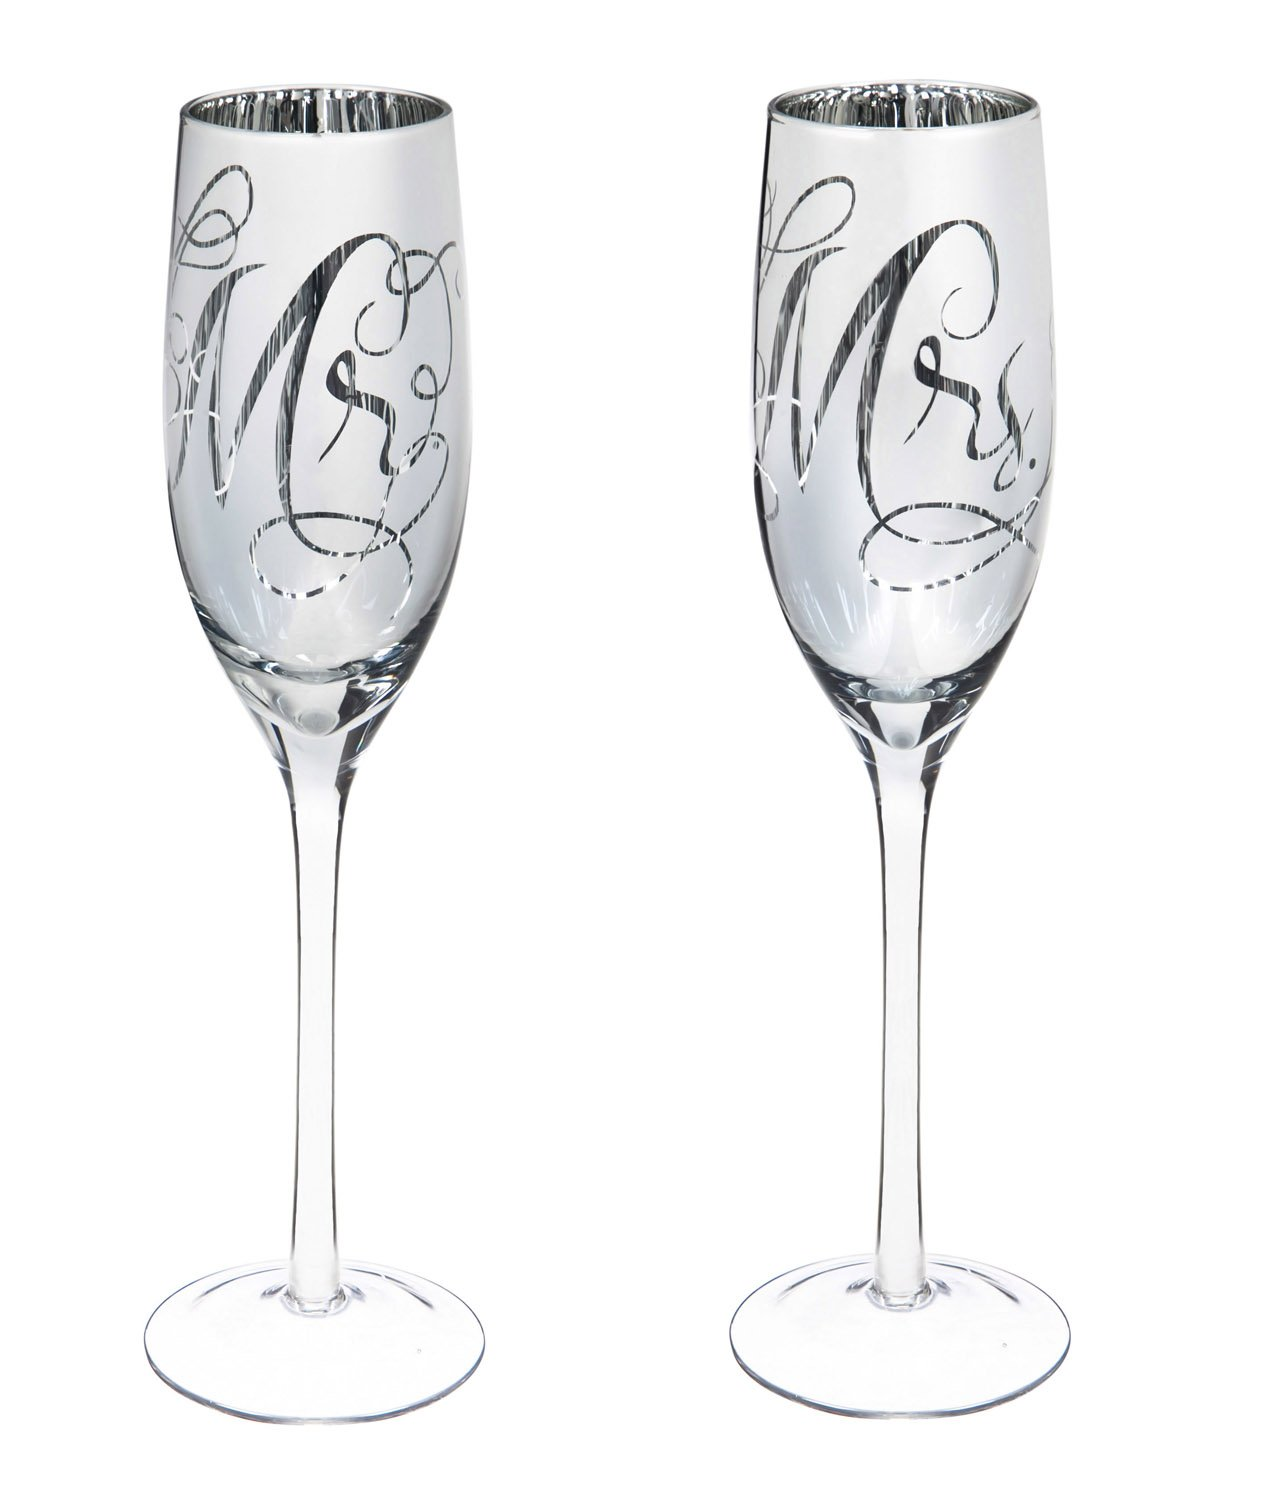 Cypress Home Hand-Detailed Silver Mercury Mirror Glass Mr. and Mrs. Script Wedding Champagne Toasting Flute Glasses, Set of 2, 8 ounces in Gift Box